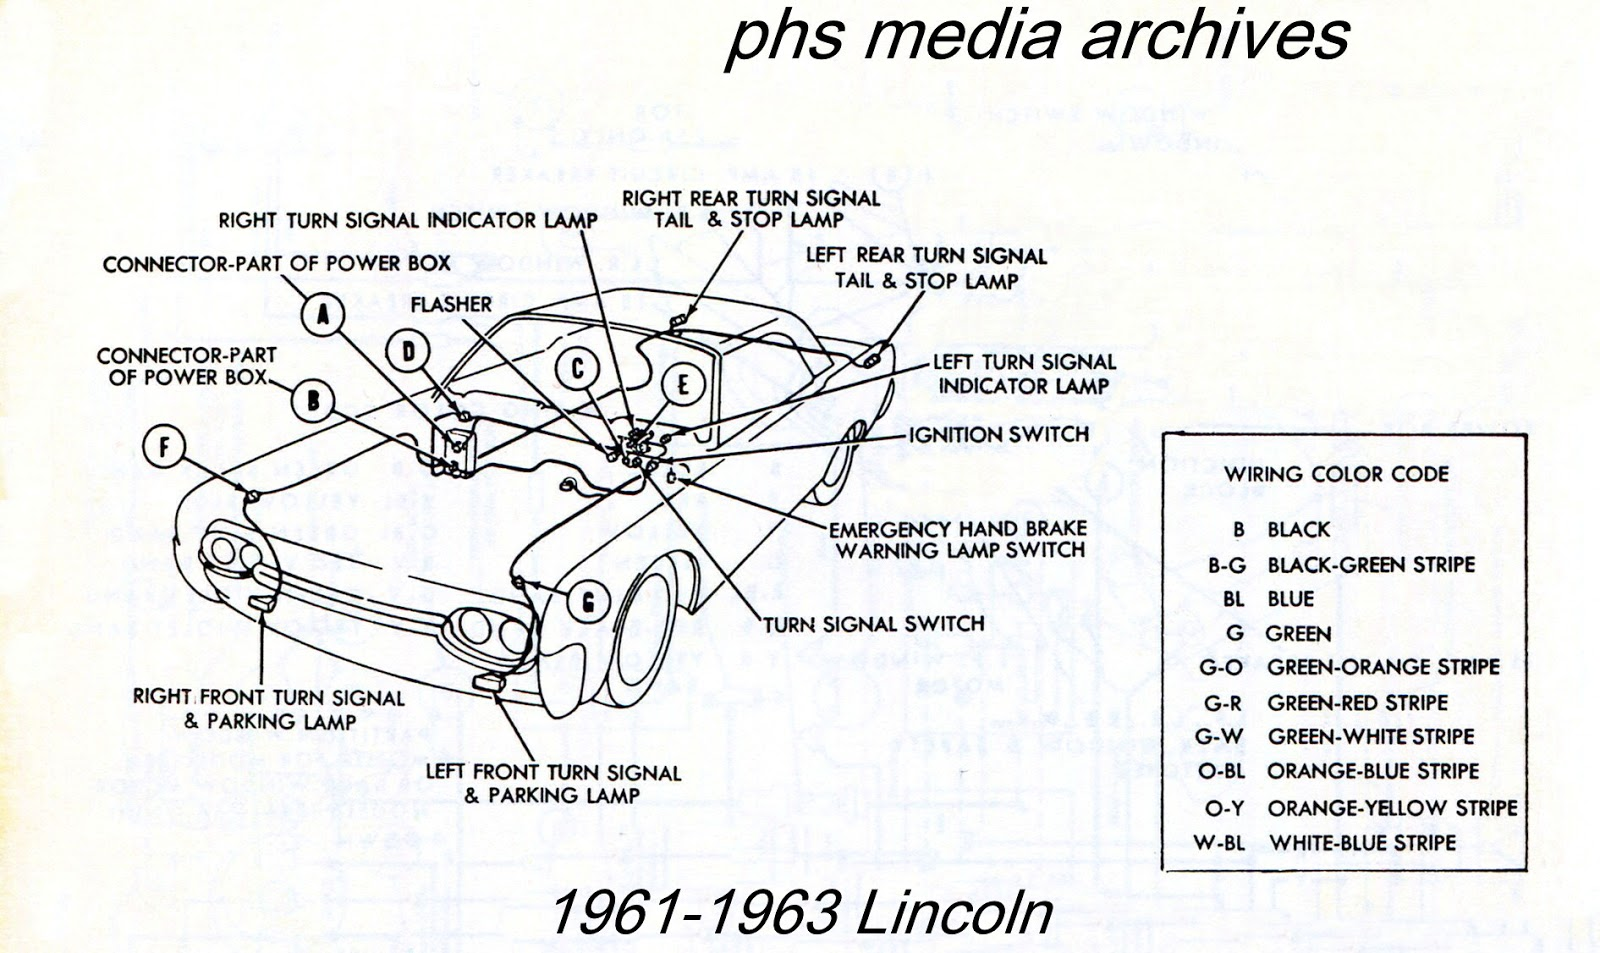 medium resolution of tech series 1960 1964 lincoln wiring diagrams phscollectorcarworld rh phscollectorcarworld blogspot com 1998 lincoln navigator wiring diagram lincoln